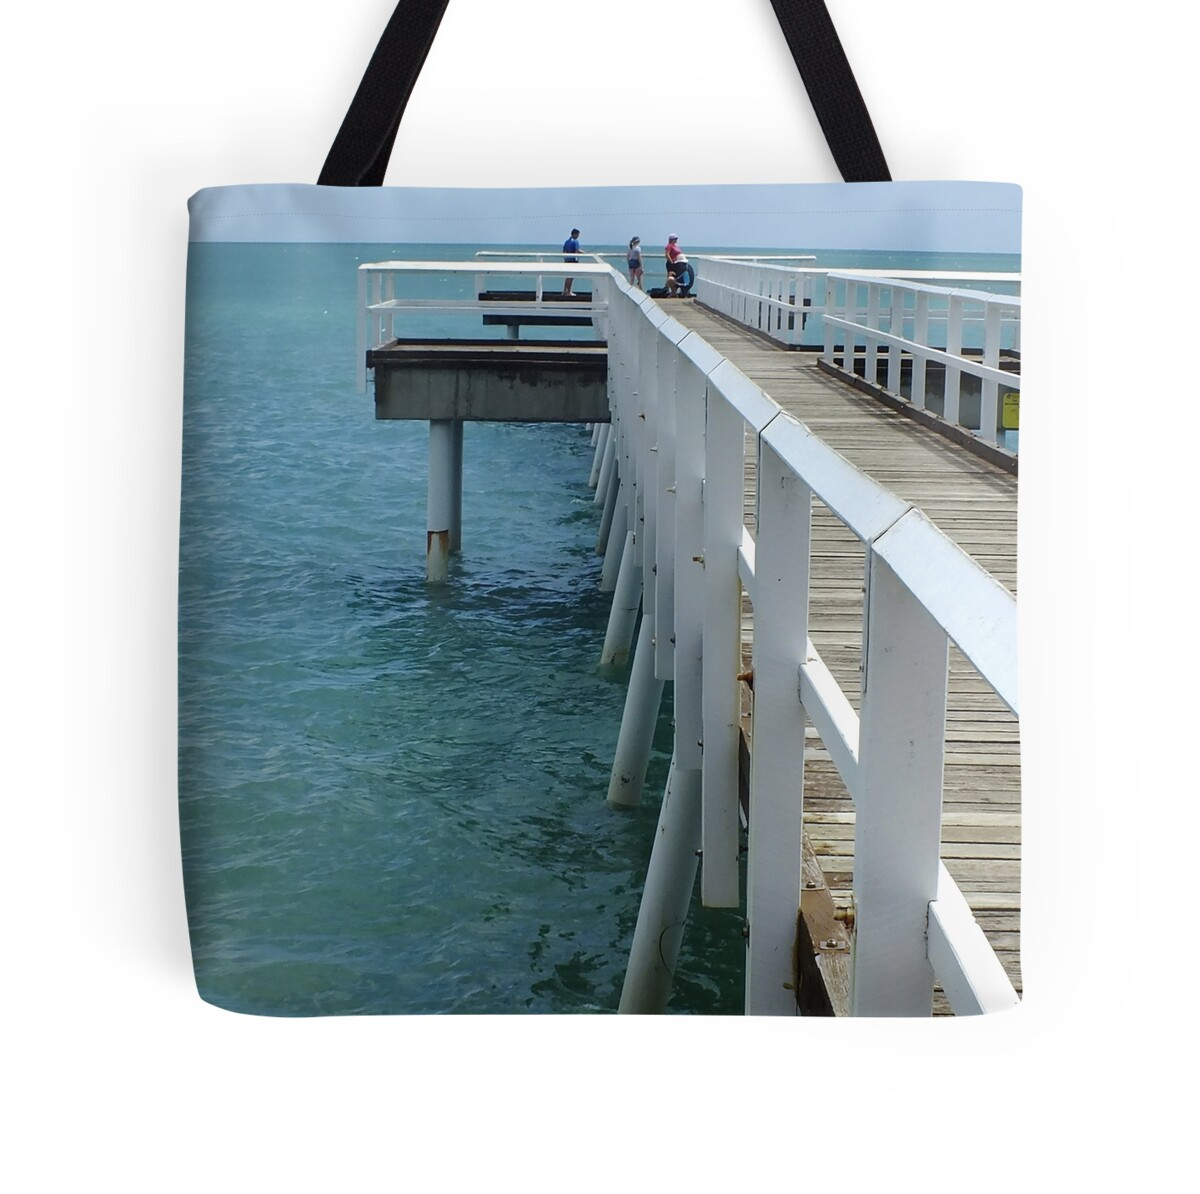 Quot Scarness Jetty Hervey Bay Qld Australia Quot Tote Bags By